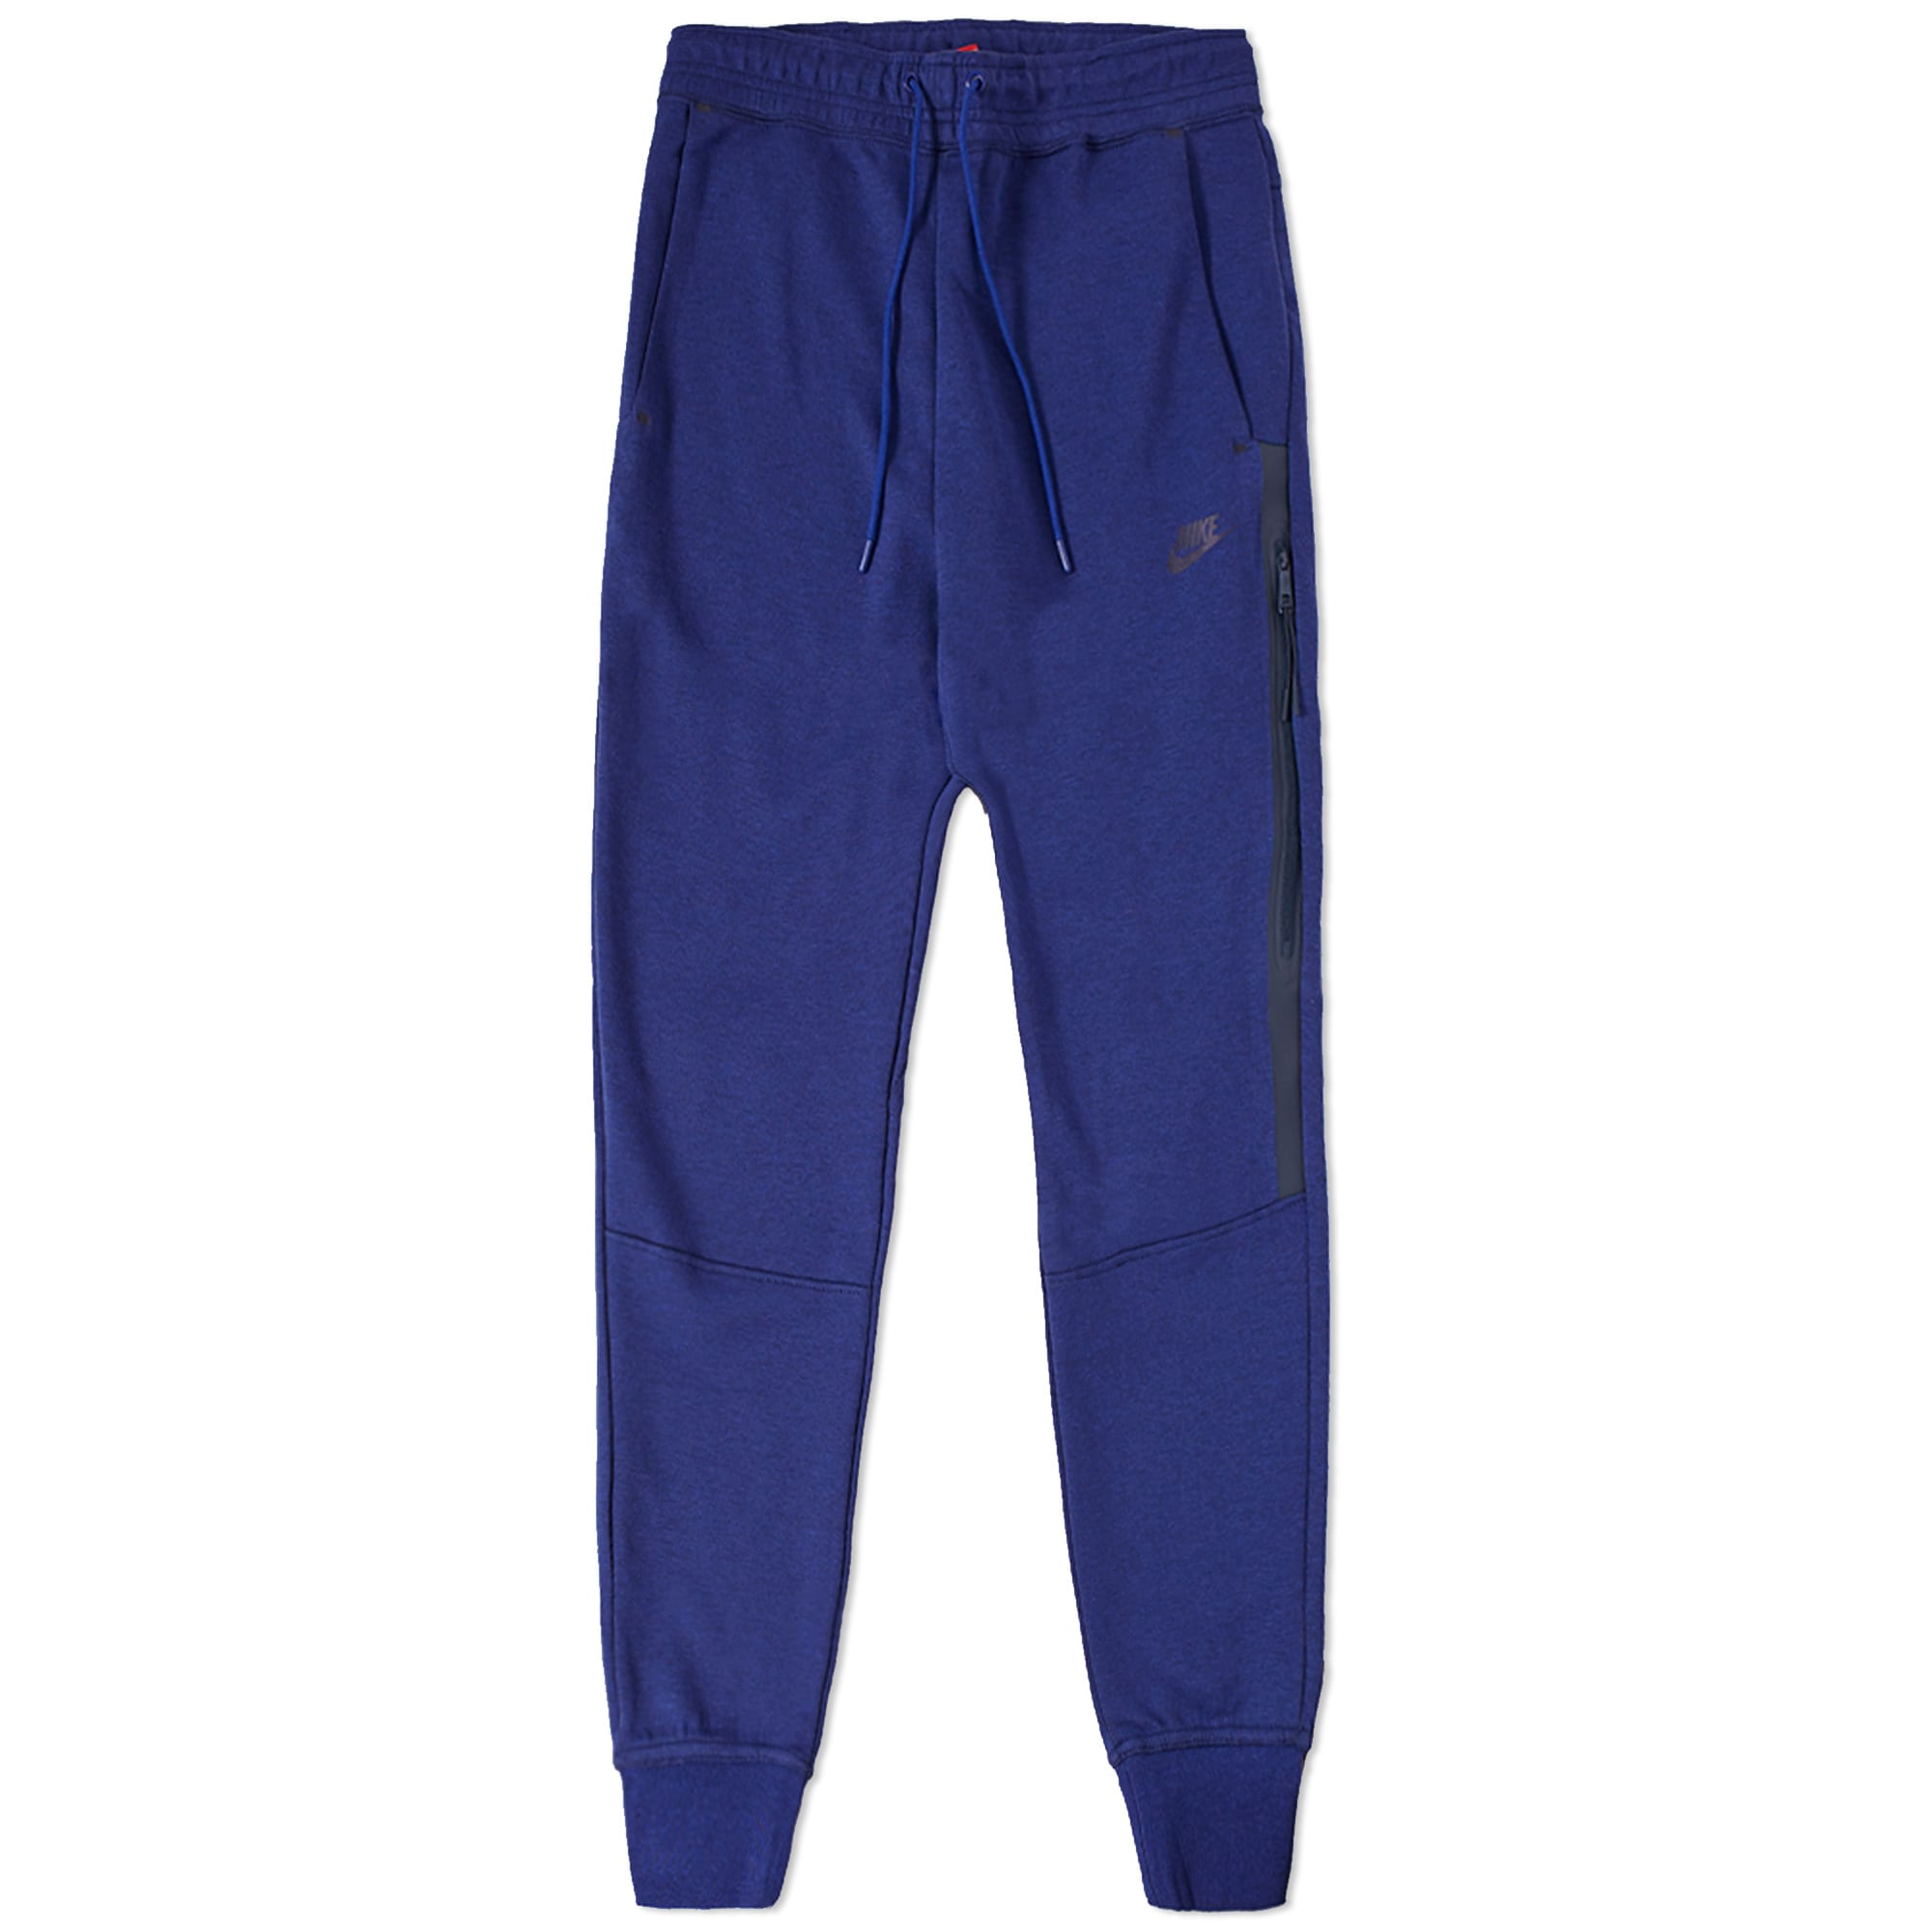 Wonderful Royal Blue Jersey Pants Elastic Waist Womens Trousers Extra Large Size